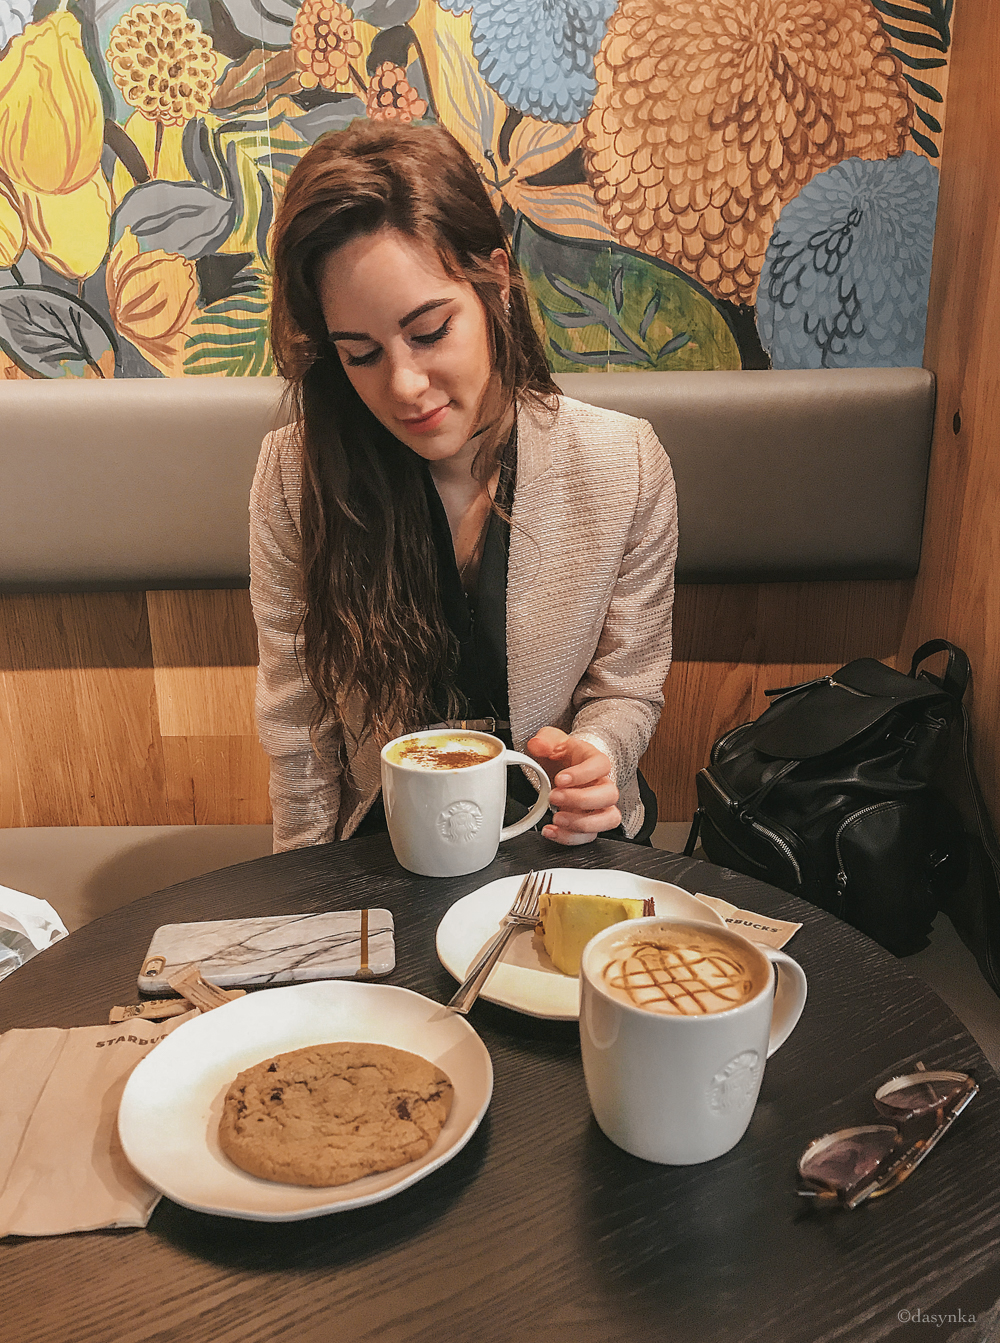 dasynka-fashion-blog-blogger-influencer-inspiration-shooting-model-globettrotter-travel-girl-lookbook-instagram-long-hair-street-style-casual-italy-lifestyle-outfit-poses-valencia-starbucks-pumpkin-spice-latte-cookies-blazer-jacket-pink-cappuccino-frappuccino-look-inspo